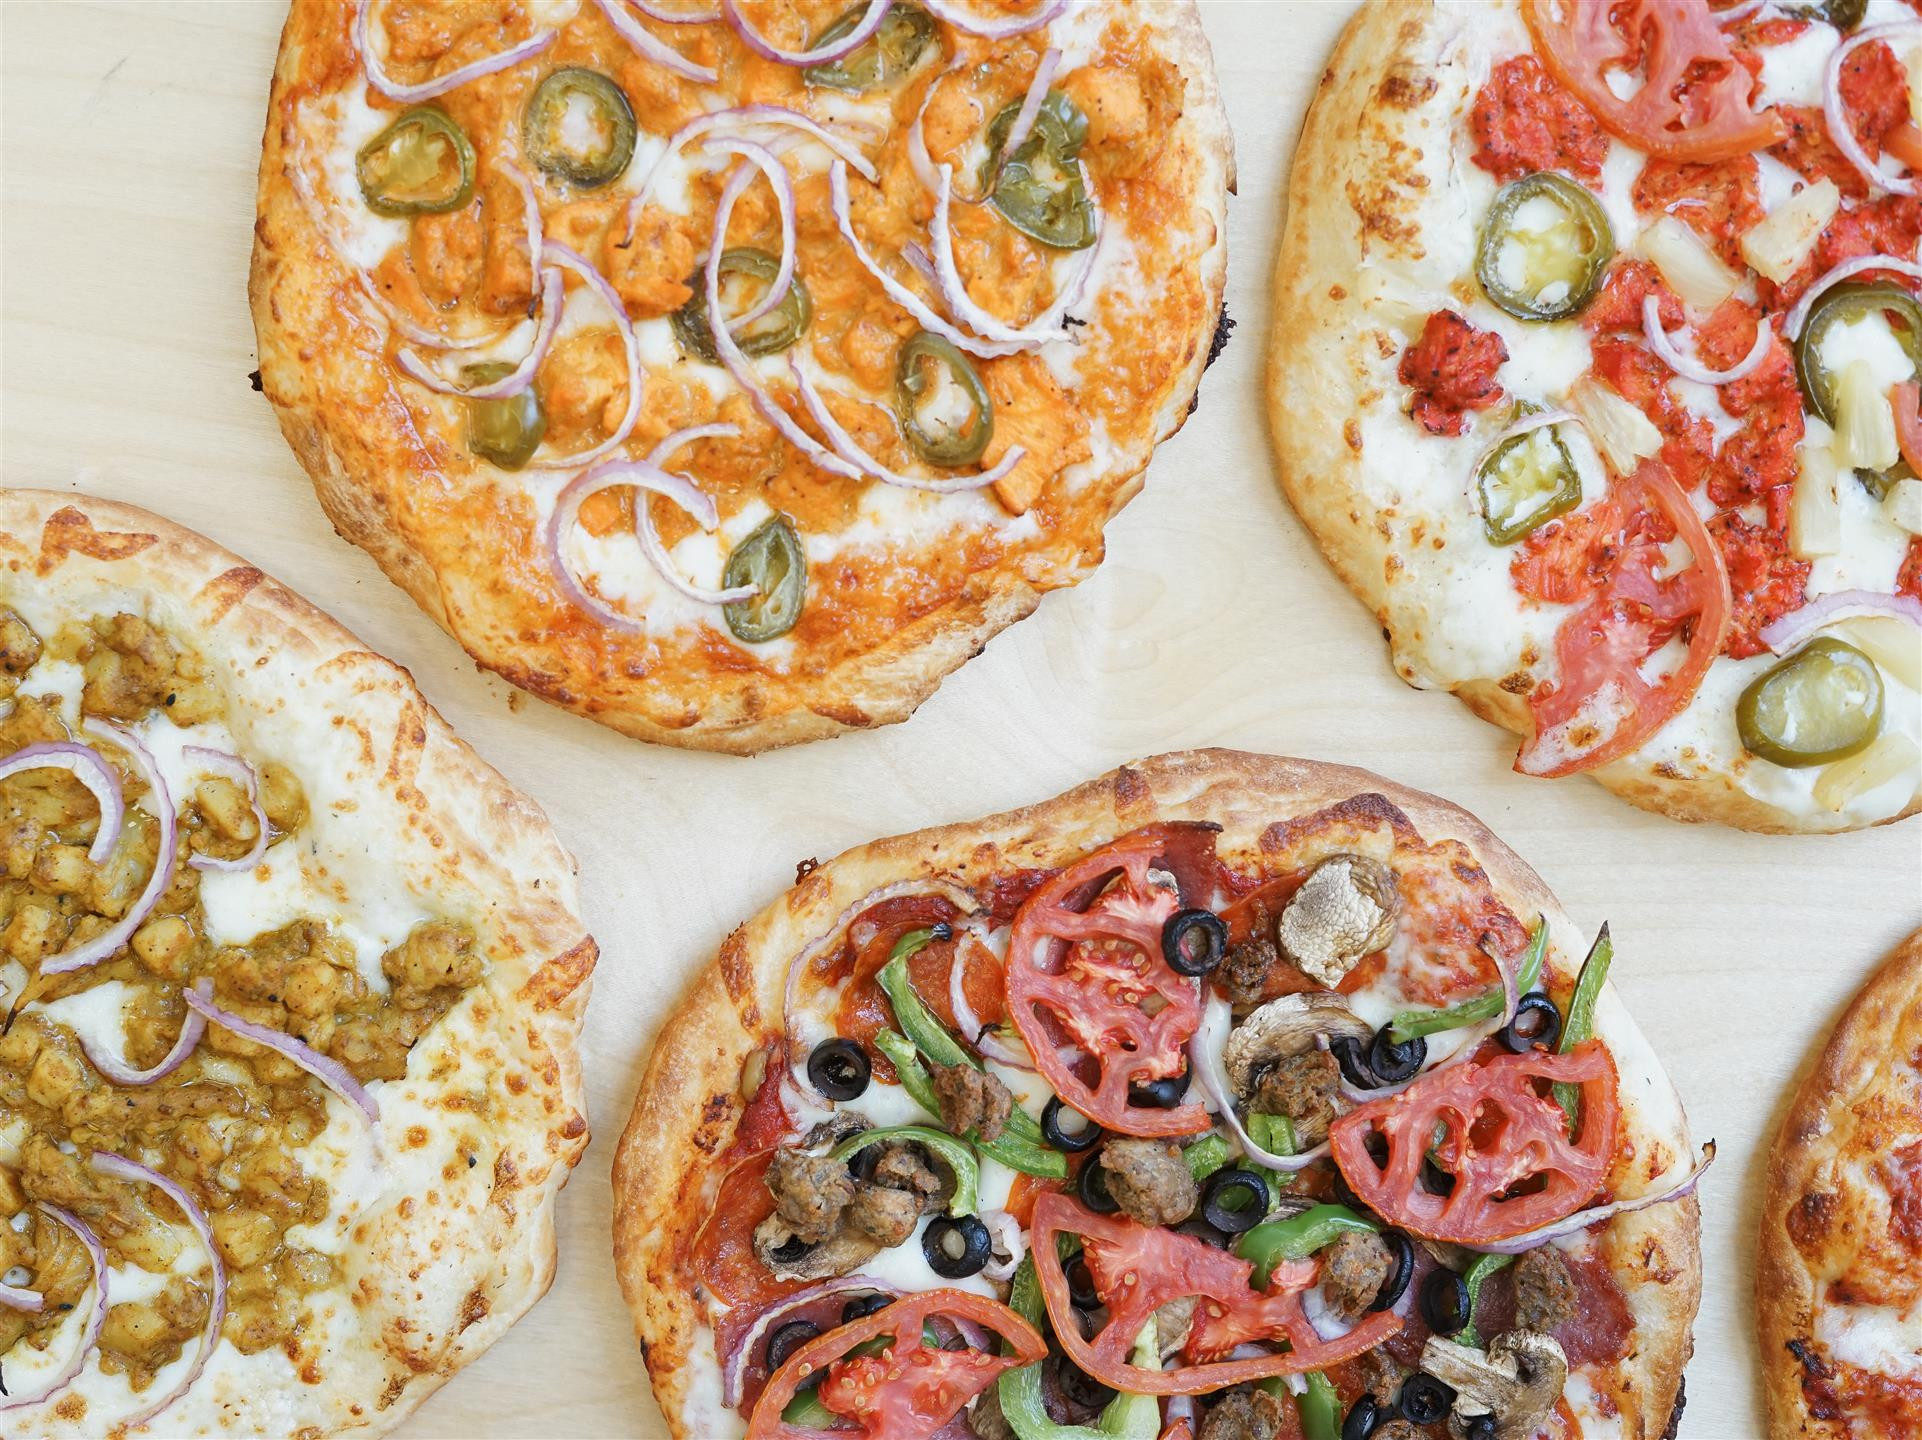 4 different types of pizzas with different toppings